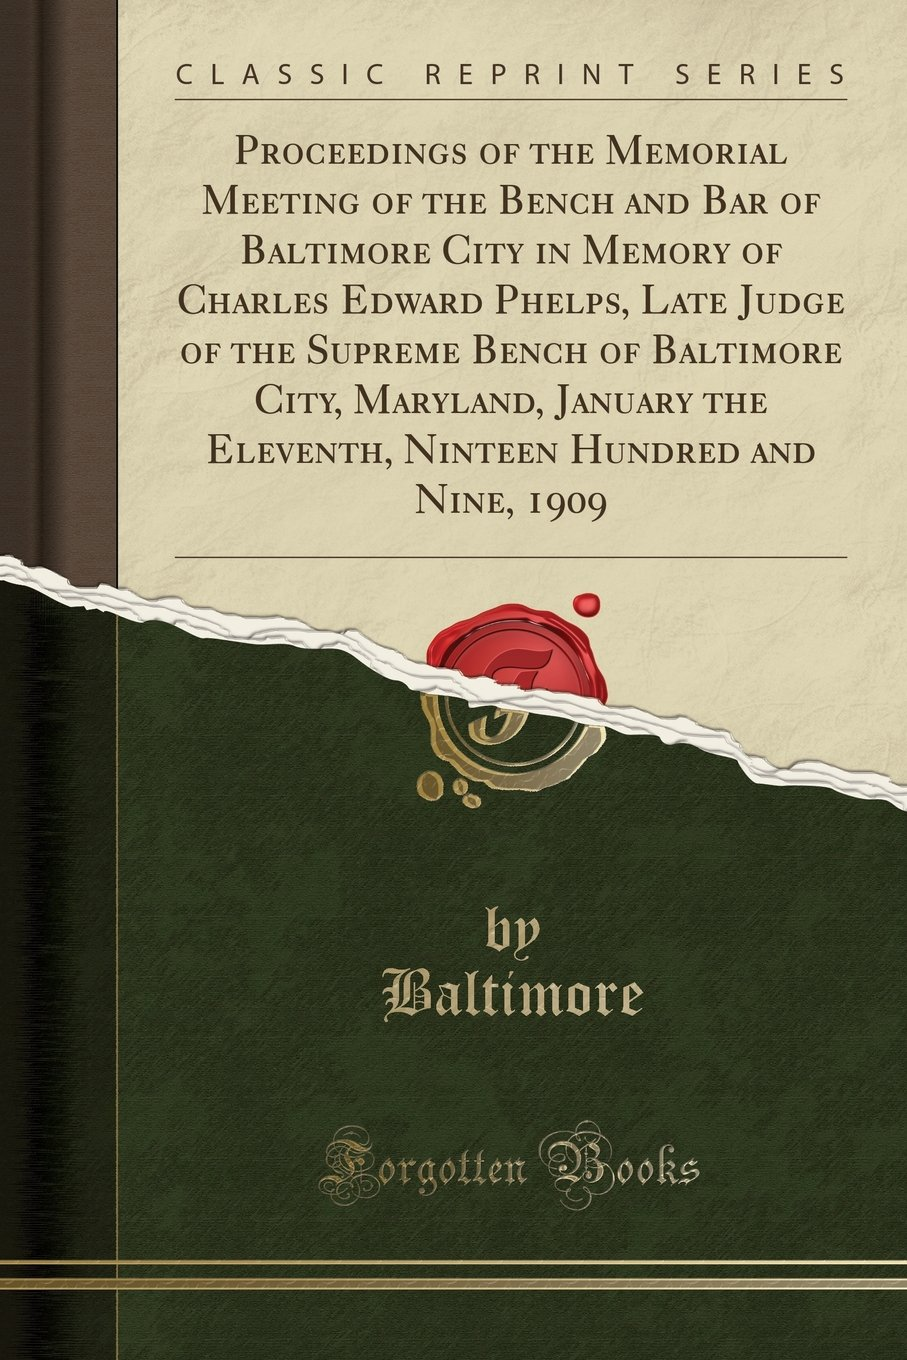 Read Online Proceedings of the Memorial Meeting of the Bench and Bar of Baltimore City in Memory of Charles Edward Phelps, Late Judge of the Supreme Bench of Hundred and Nine, 1909 (Classic Reprint) PDF